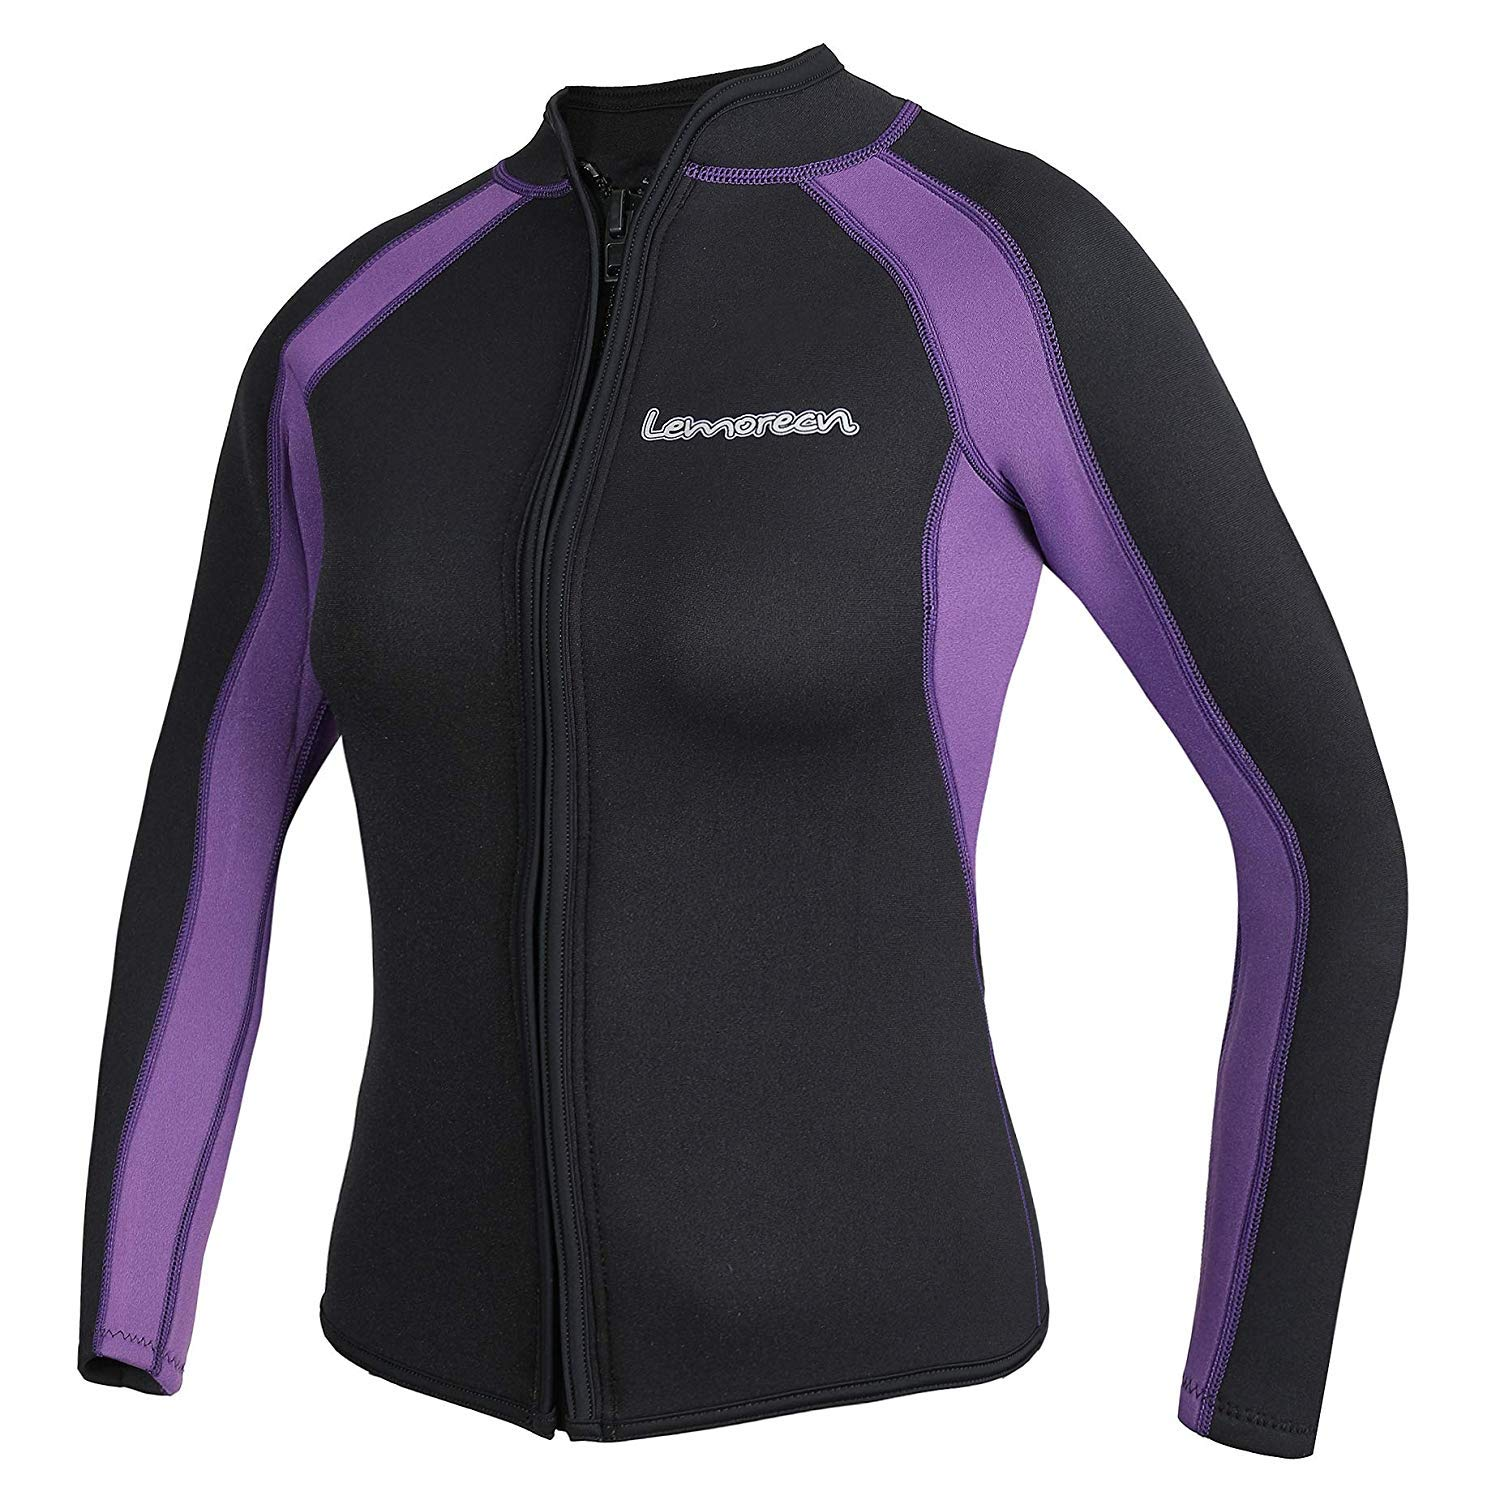 Lemorecn Women's 3mm Wetsuits Jacket Long Sleeve Neoprene Wetsuits Top (2041blackpurple4) by Lemorecn